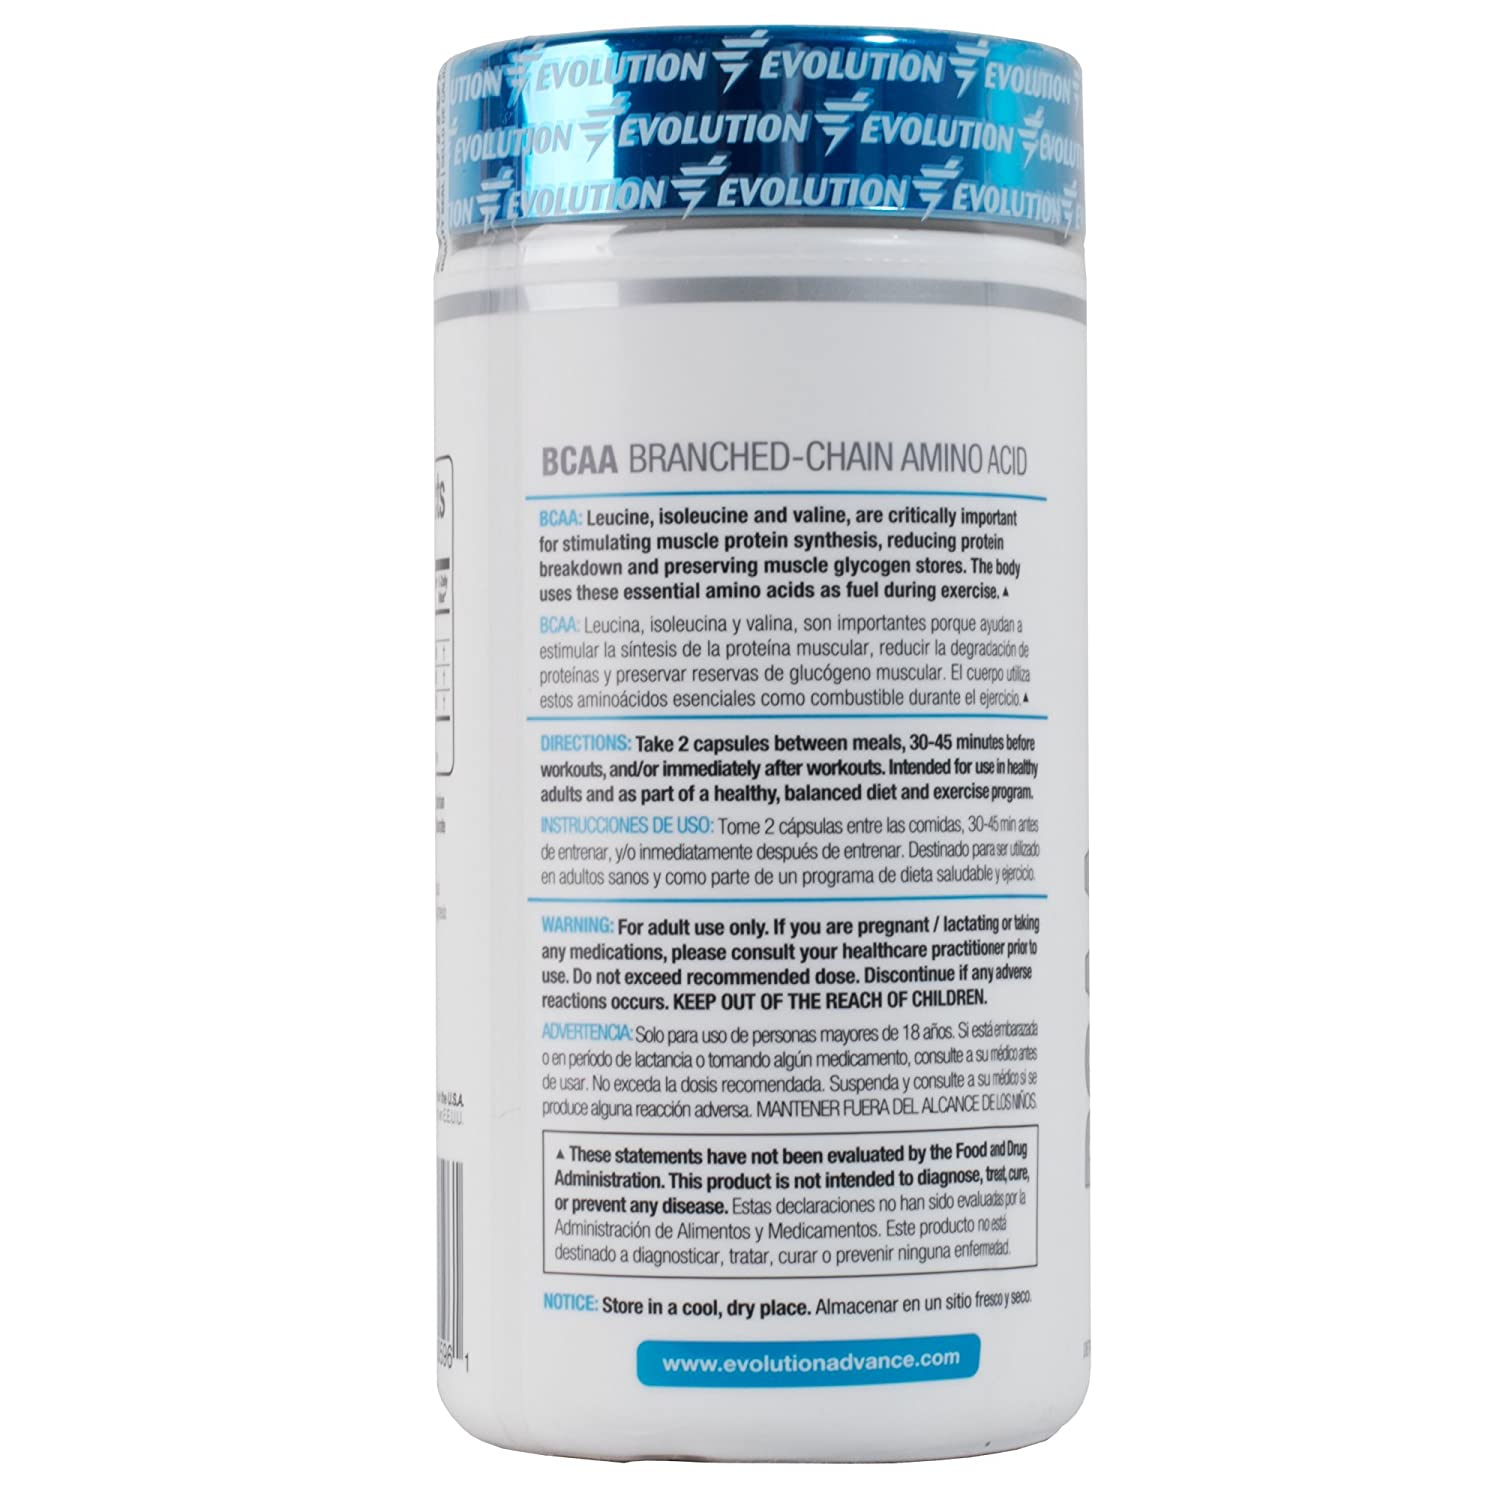 Amazon.com: Evolution Advance Nutrition BCAA 2:1:1 (500mg l-leucine, 250mg l-isoleucine, 250mg l-valine) dietary supplement capsules (120 vegetarian ...